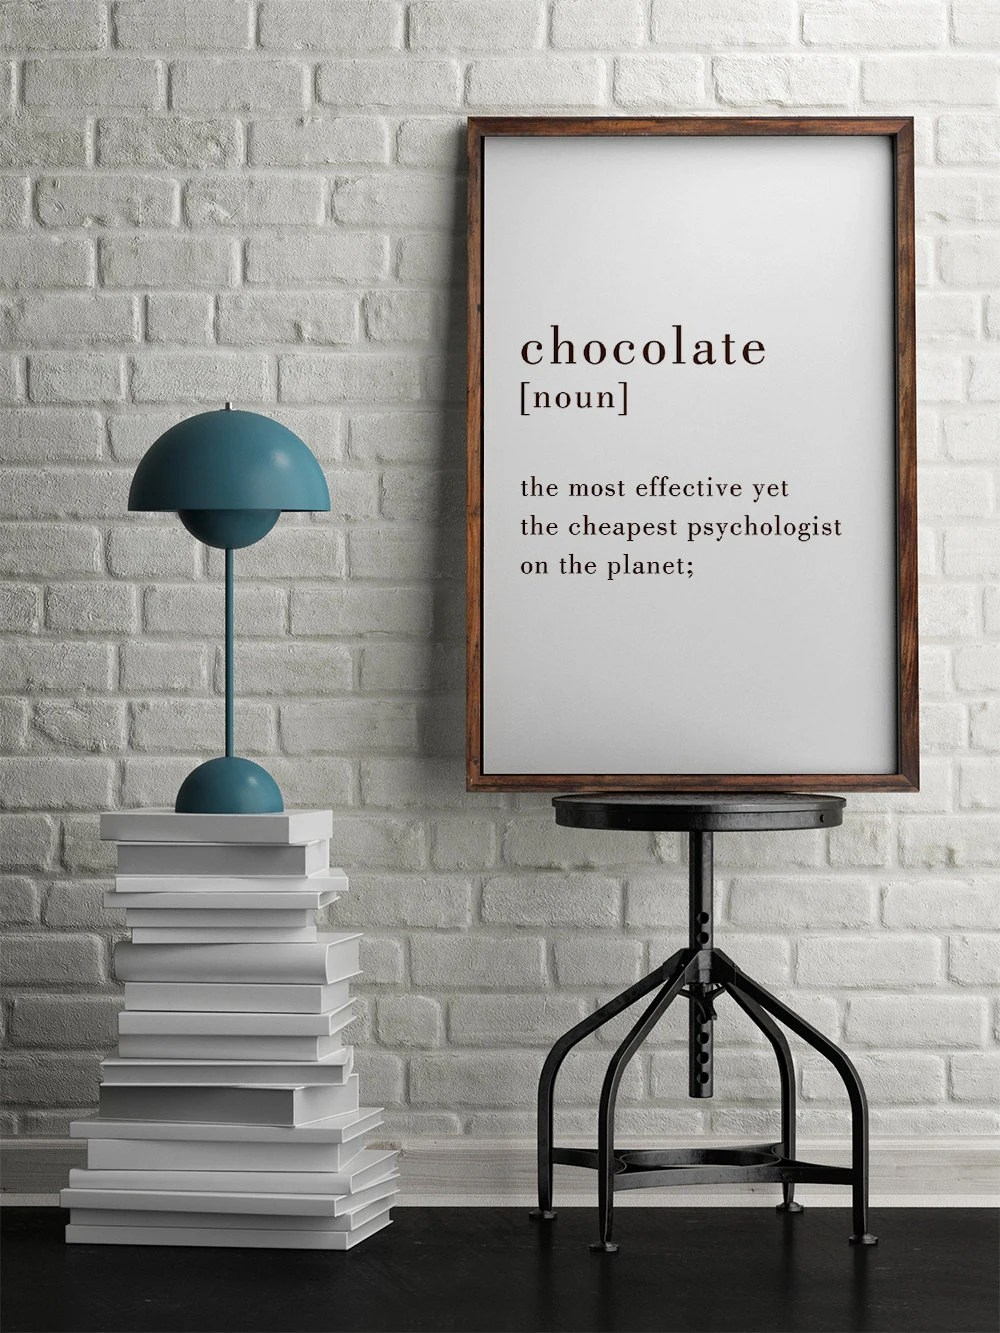 50x70 Poster Chocolate Poster 50x70 Poster Wall Art Motivational Poster Kitchen Poster Home Decor Chocolate Definition Digital Print Gift For Her